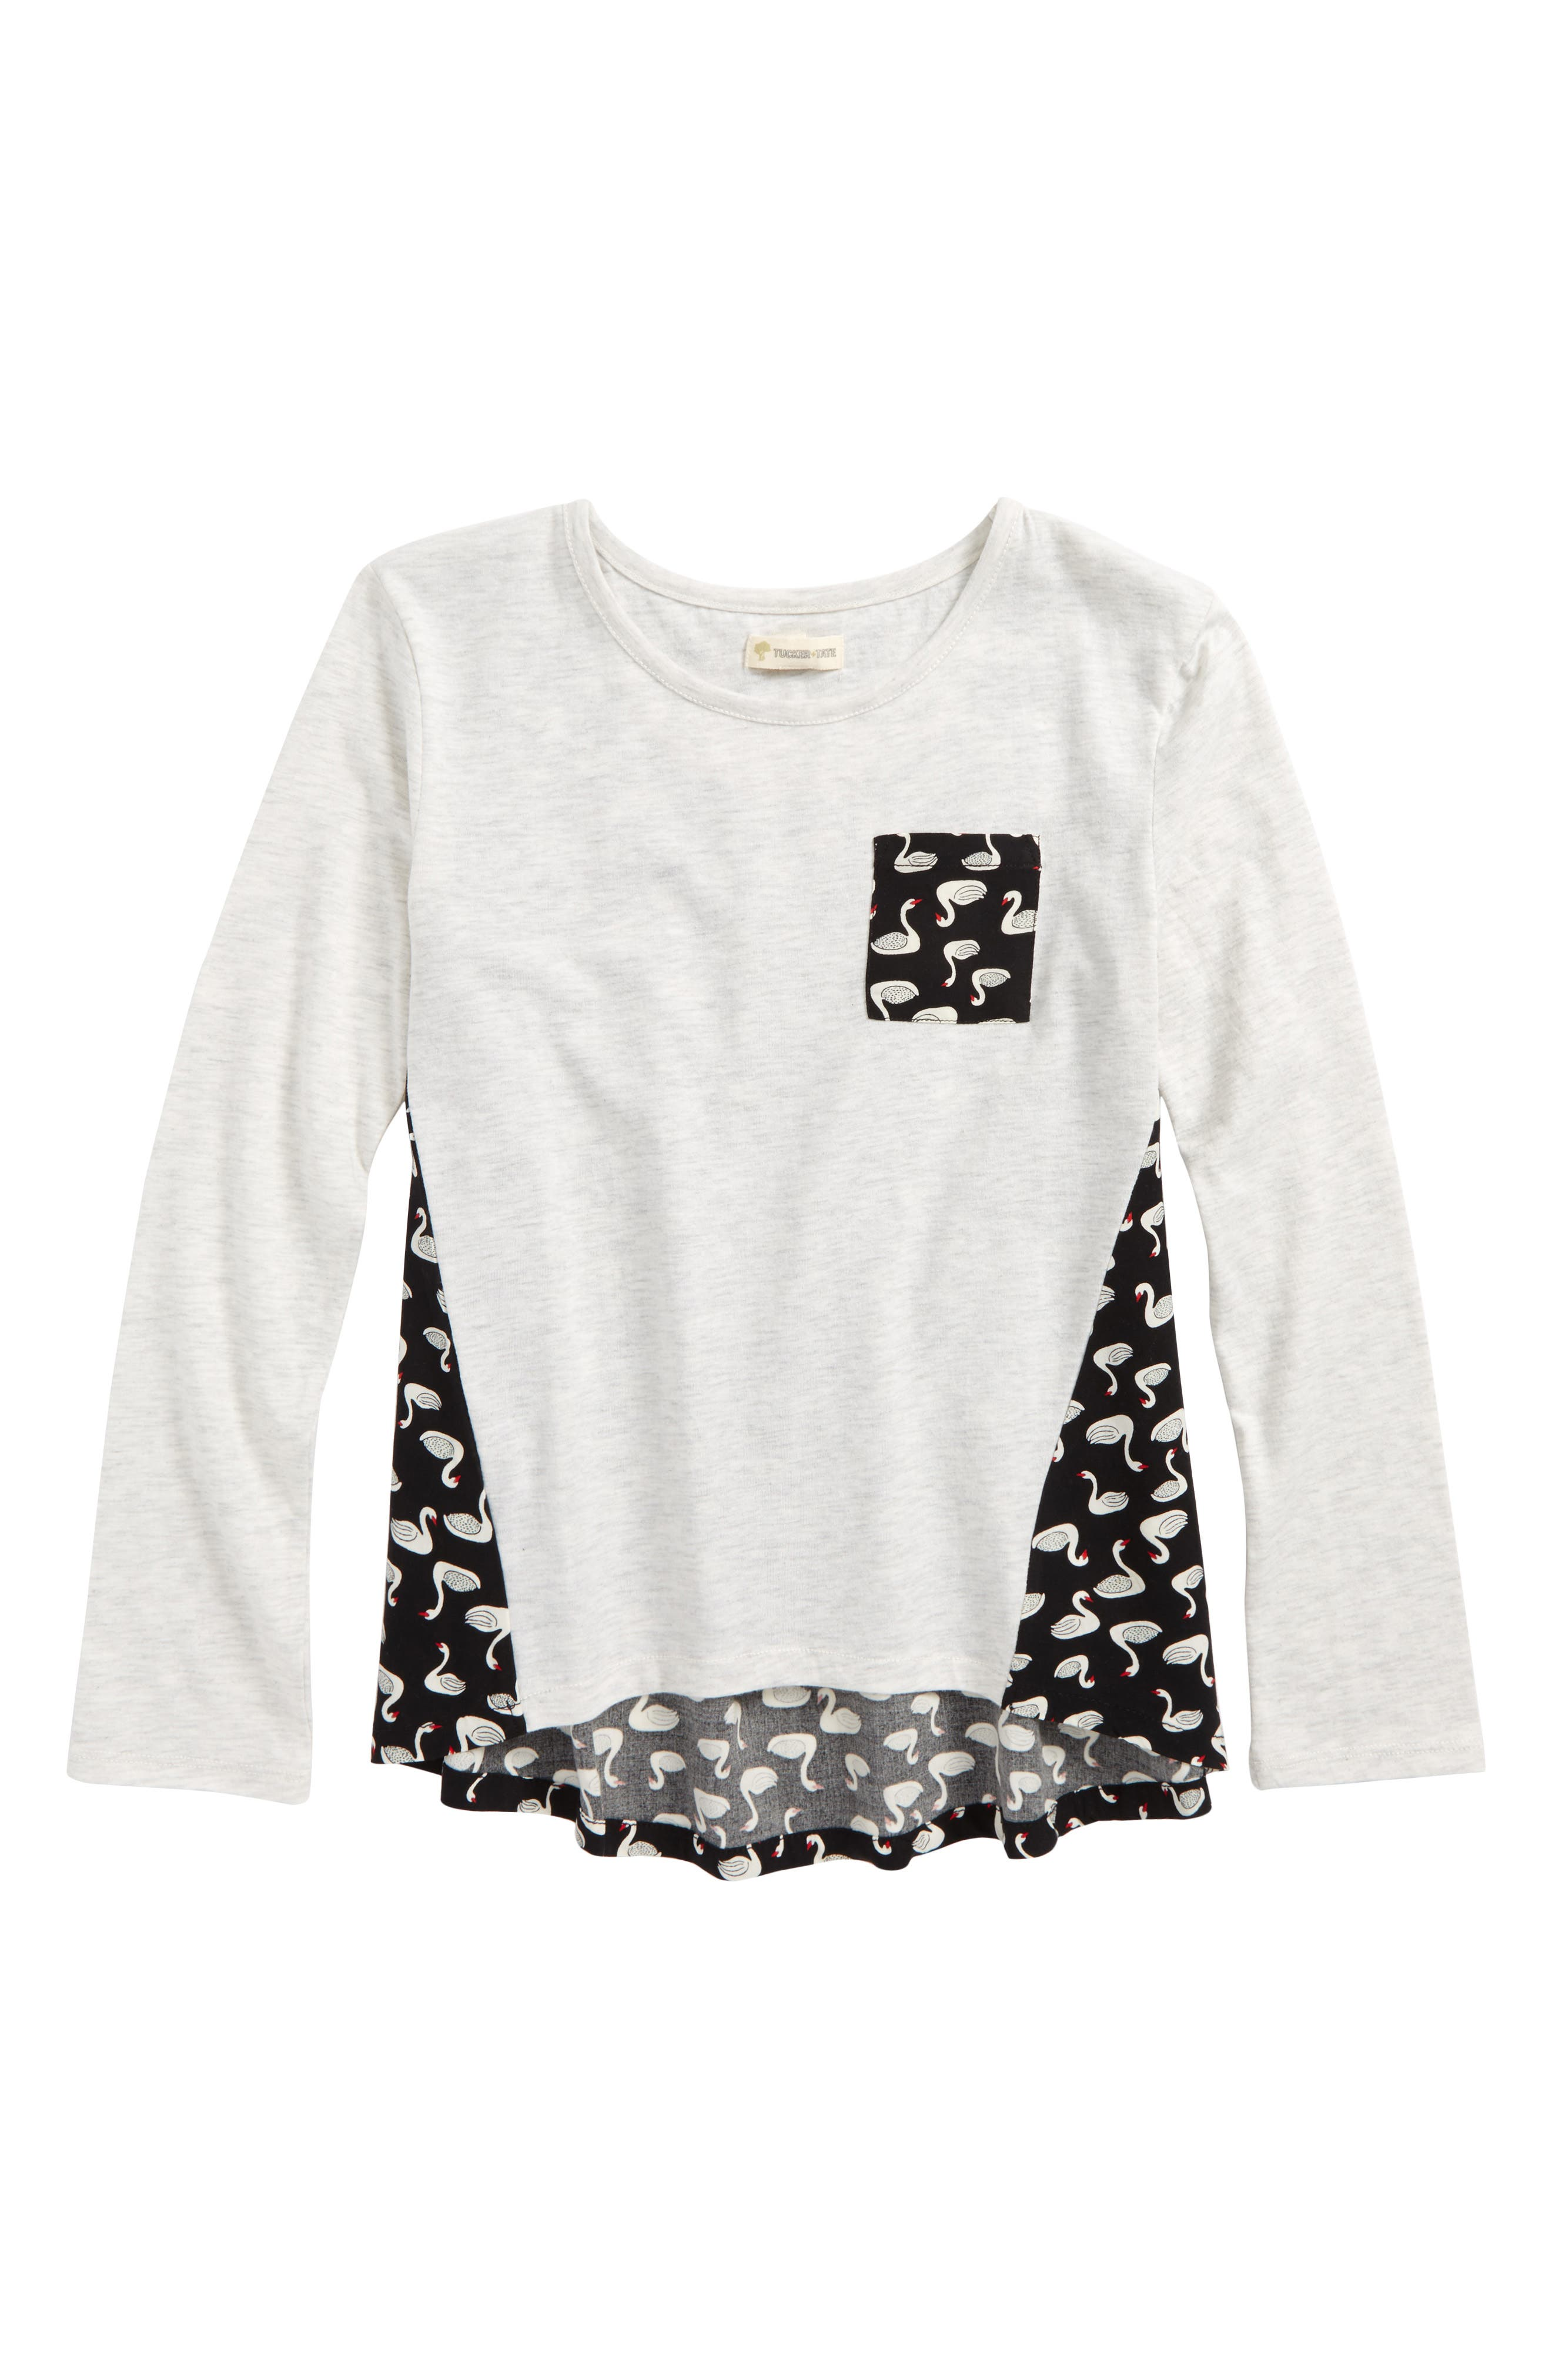 Mix Media Tee,                         Main,                         color, Ivory Egret Heather Swan Party